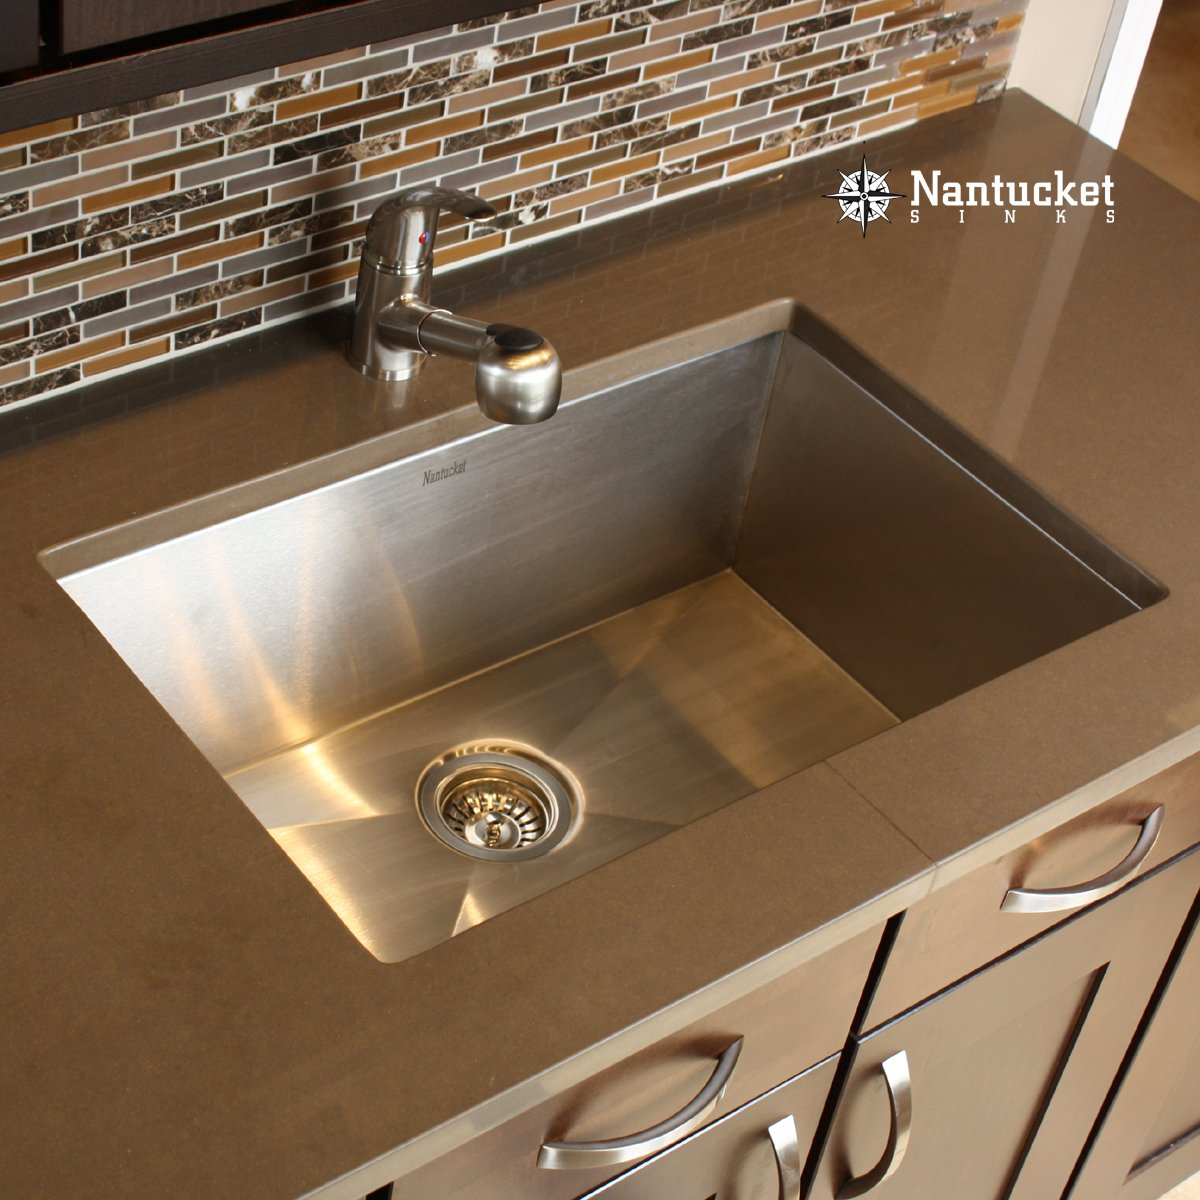 Nantucket Sinks ZR2818-16 28-Inch Pro Series Single Bowl ...